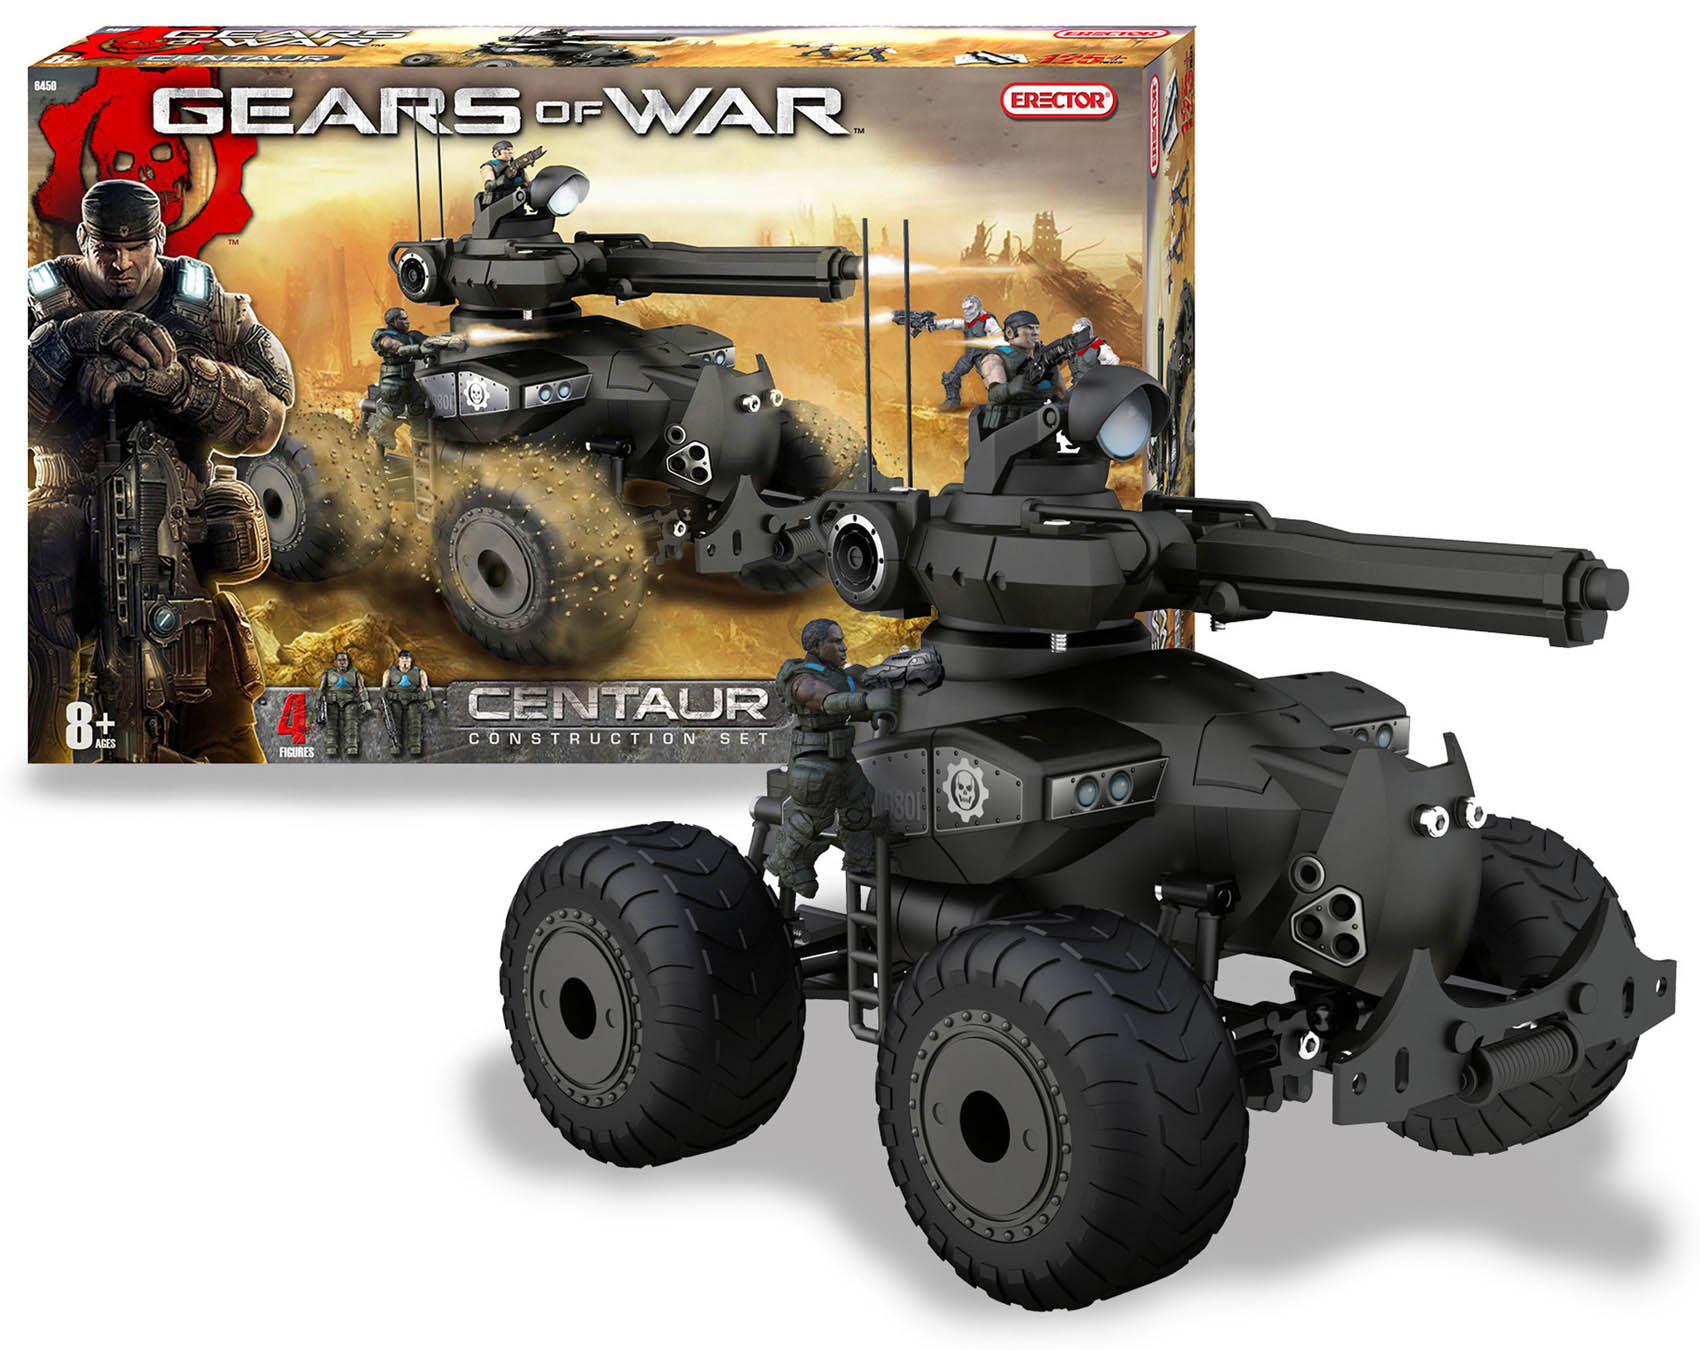 lego helicopter army with Press Release Gears Of War Erector Sets Info 6562 on Watch additionally True Heroes C130 Sighted 10622 moreover 107314 Moc 60051 Club Car And Extended Car likewise 8277628617 in addition Watch.